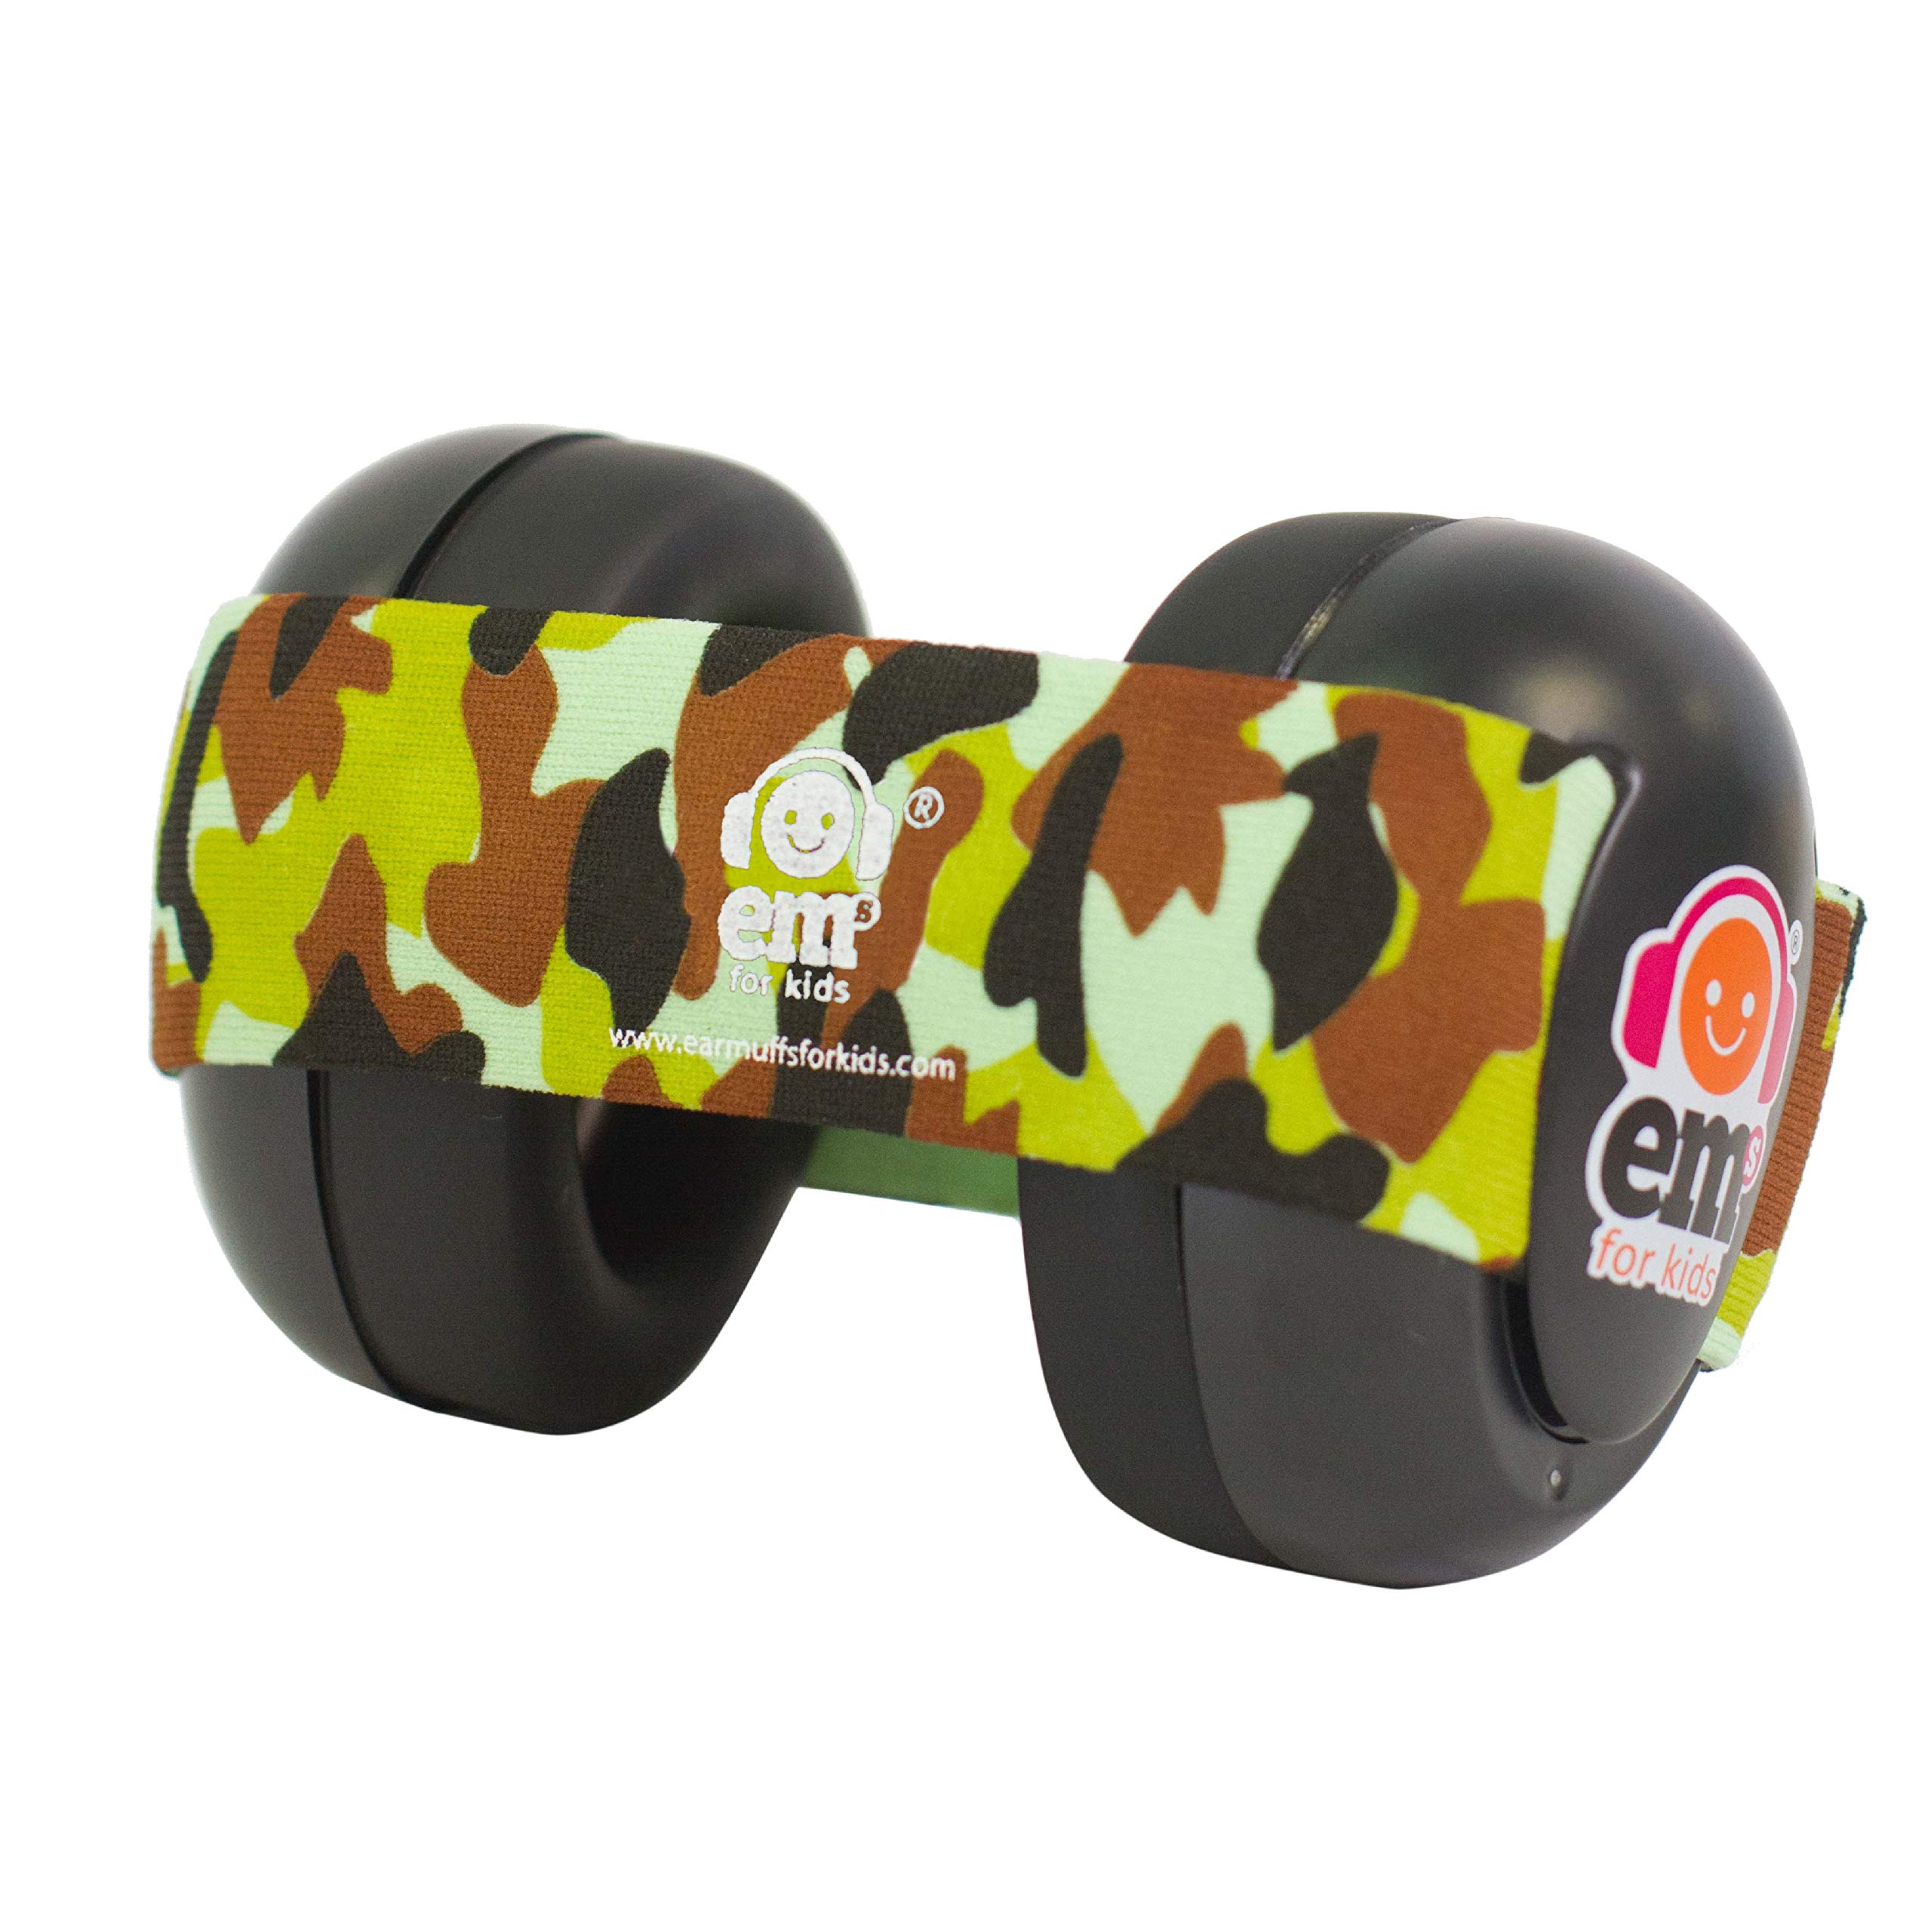 Ems for Kids Baby Earmuffs - Black with Army Camo. Made in The U.S.A! The Original and ONLY Earmuffs Designed specifically for Babies Since 2009